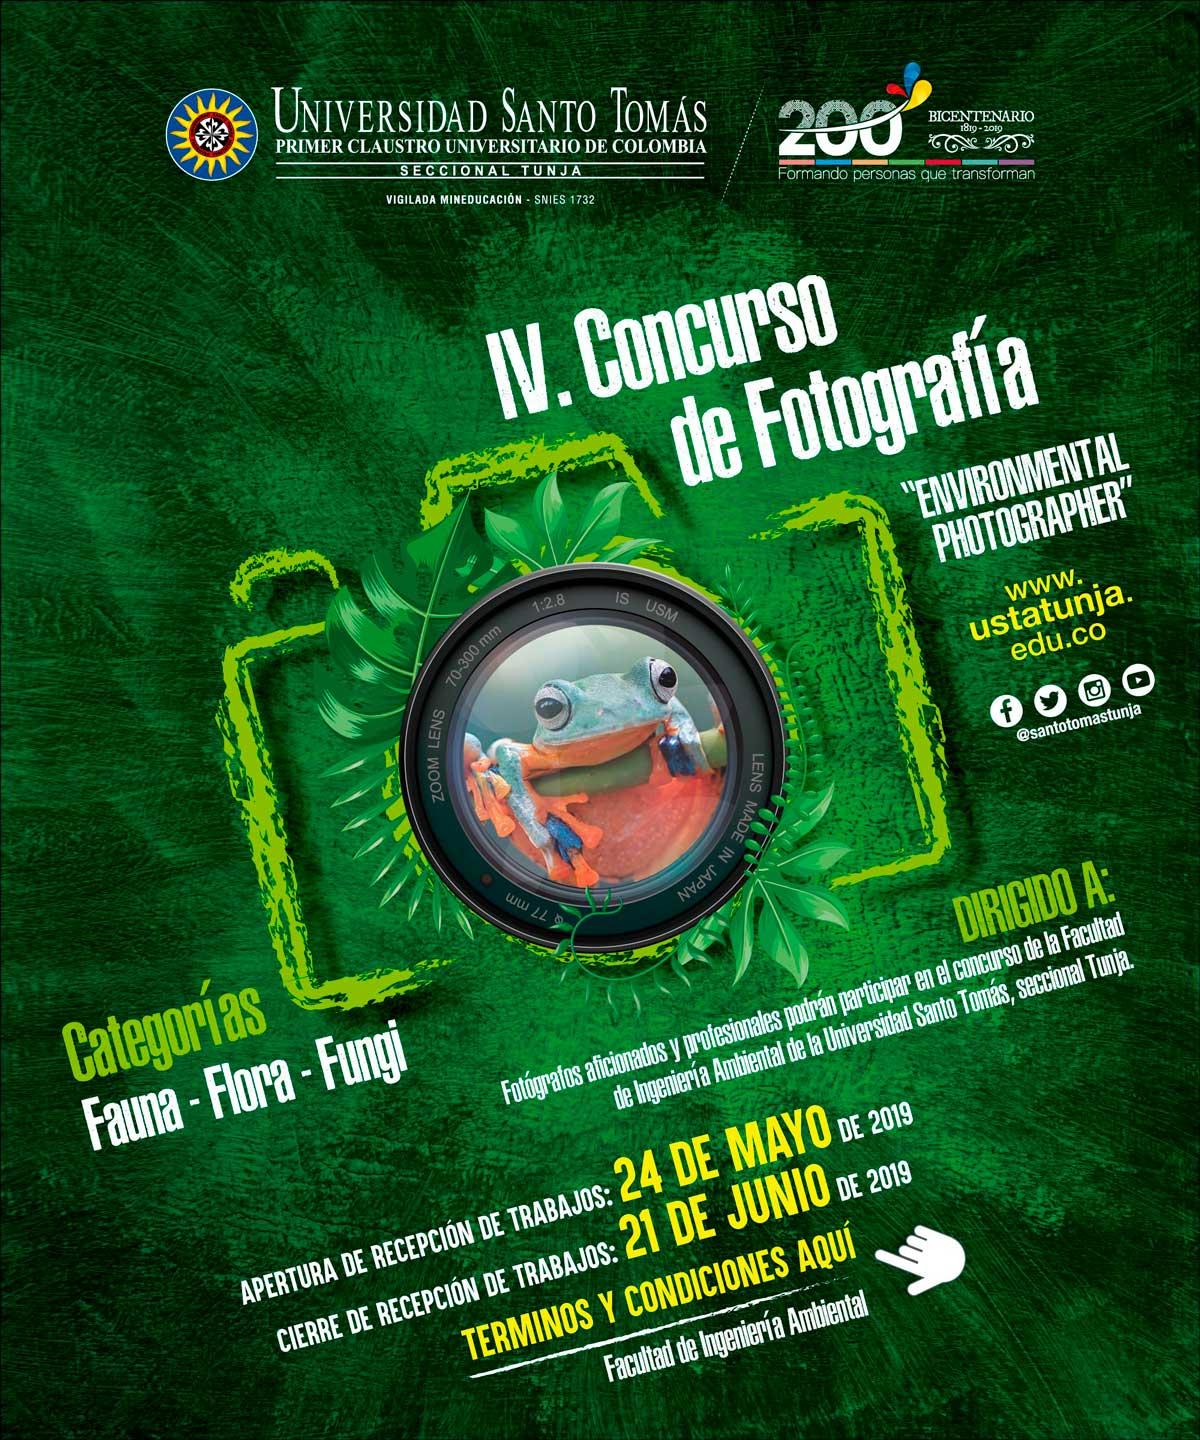 IV 2019 Environmental Engineering Photo Contest